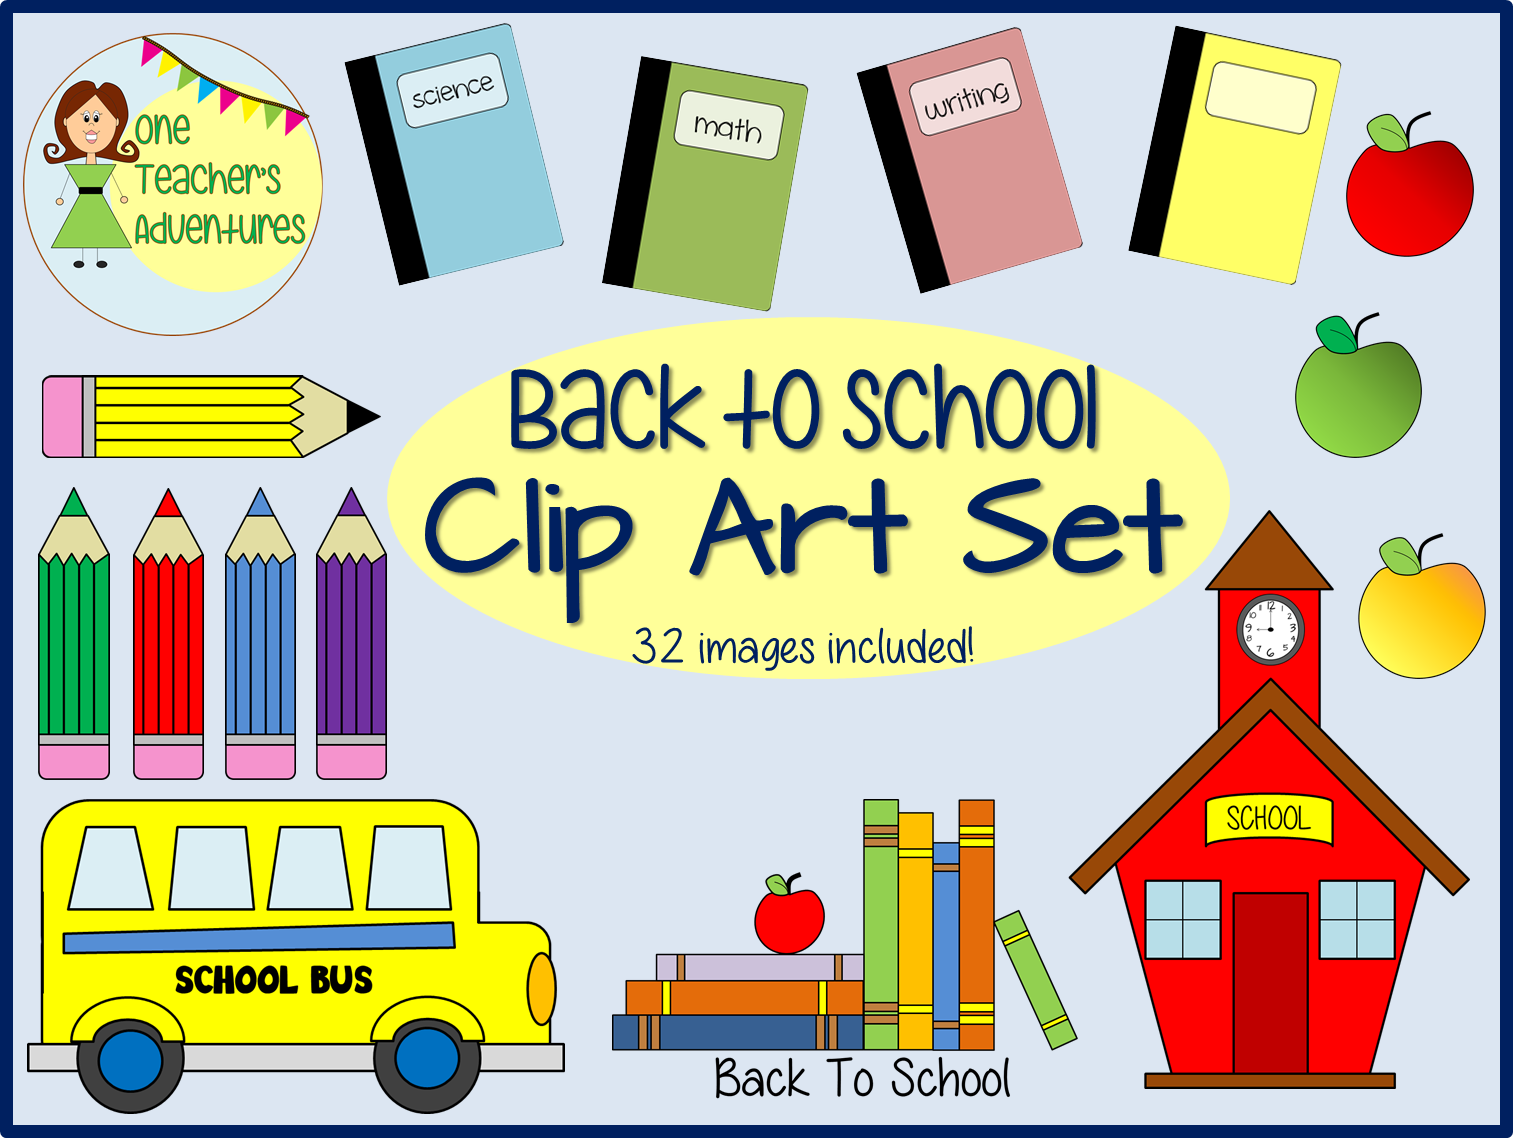 http://www.teacherspayteachers.com/Product/Back-to-School-Clip-Art-1400355